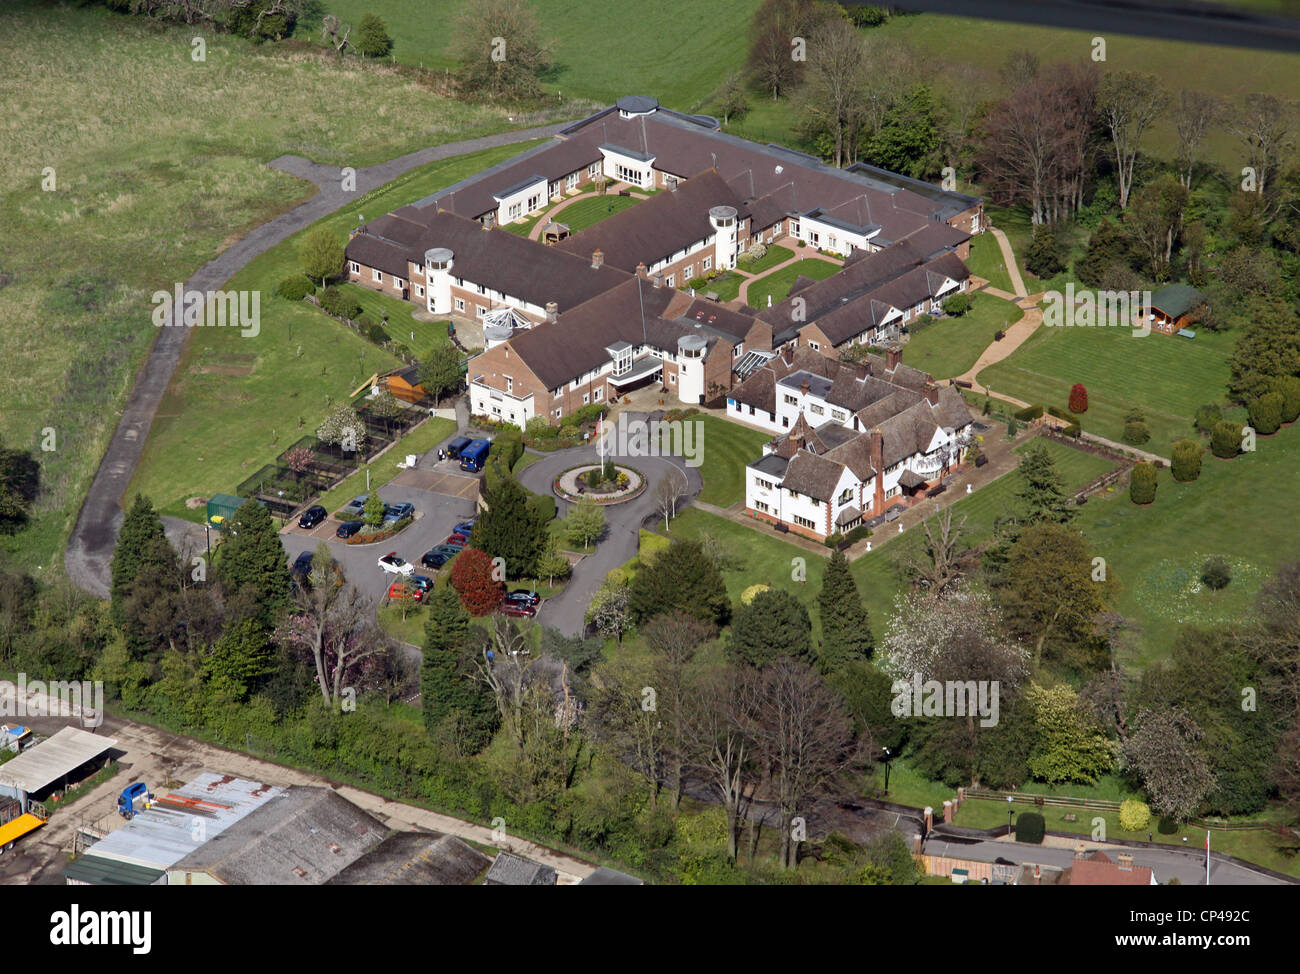 aerial view of the Royal Alfred Seafarers Society HQ near Banstead - Stock Image